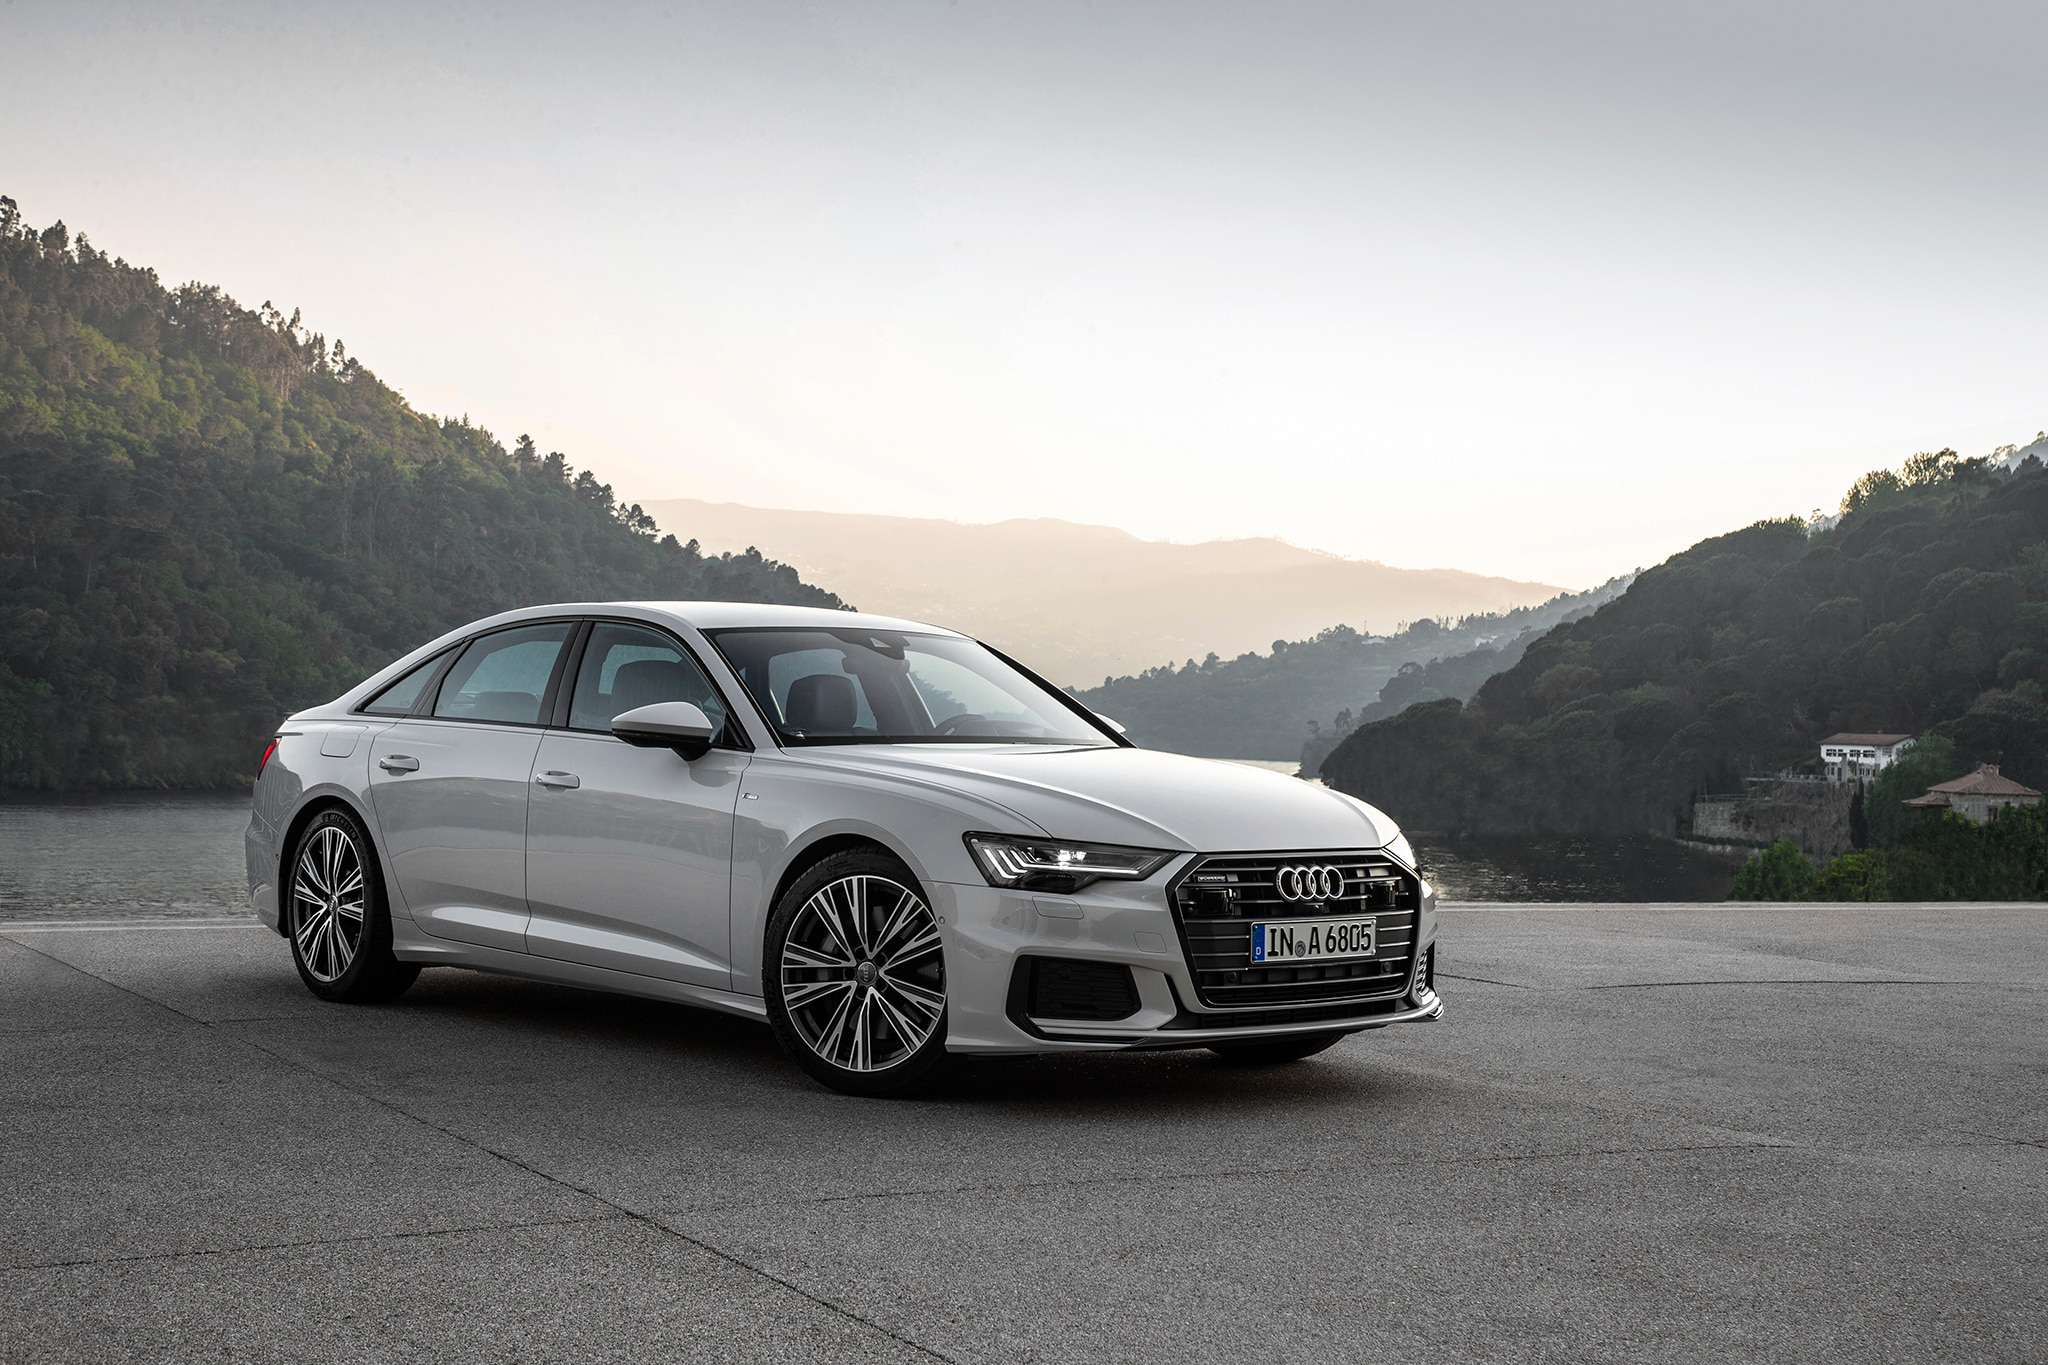 2019 audi a6 first drive review automobile magazine. Black Bedroom Furniture Sets. Home Design Ideas